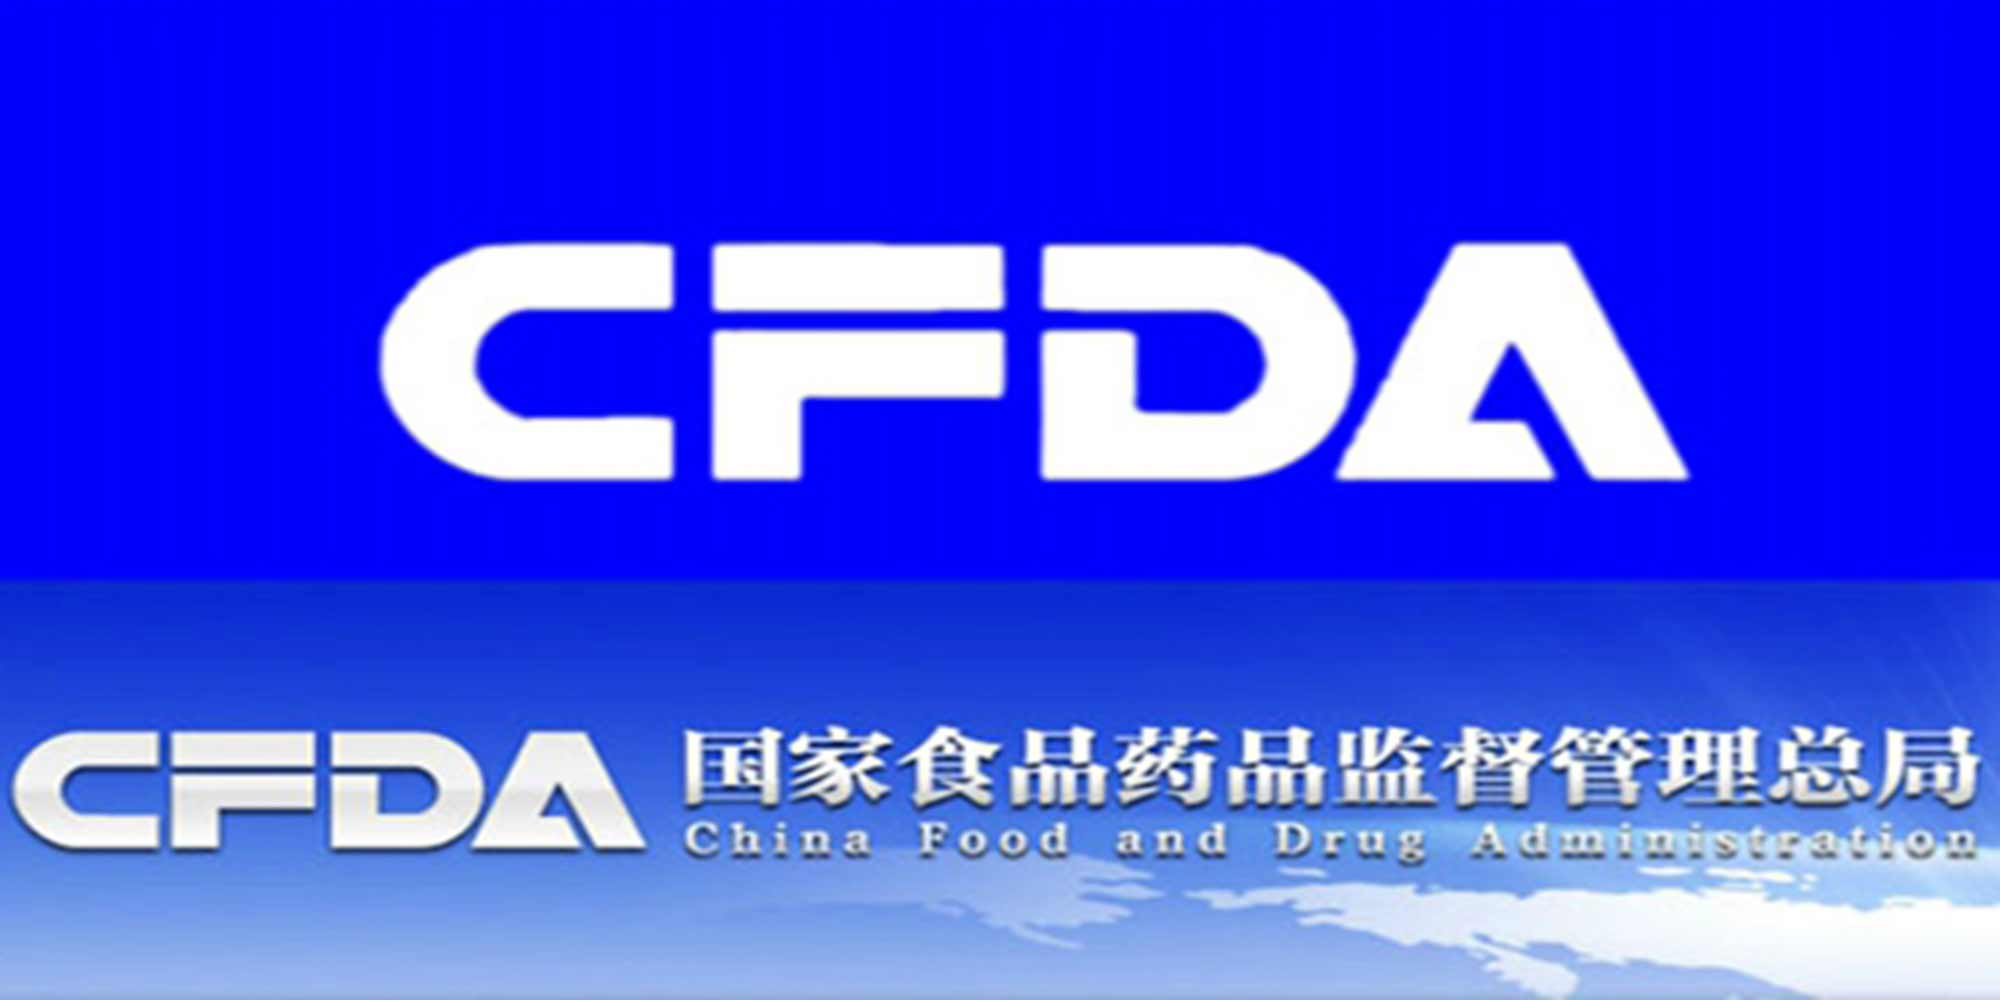 China Food and Drug Administration: What's new?